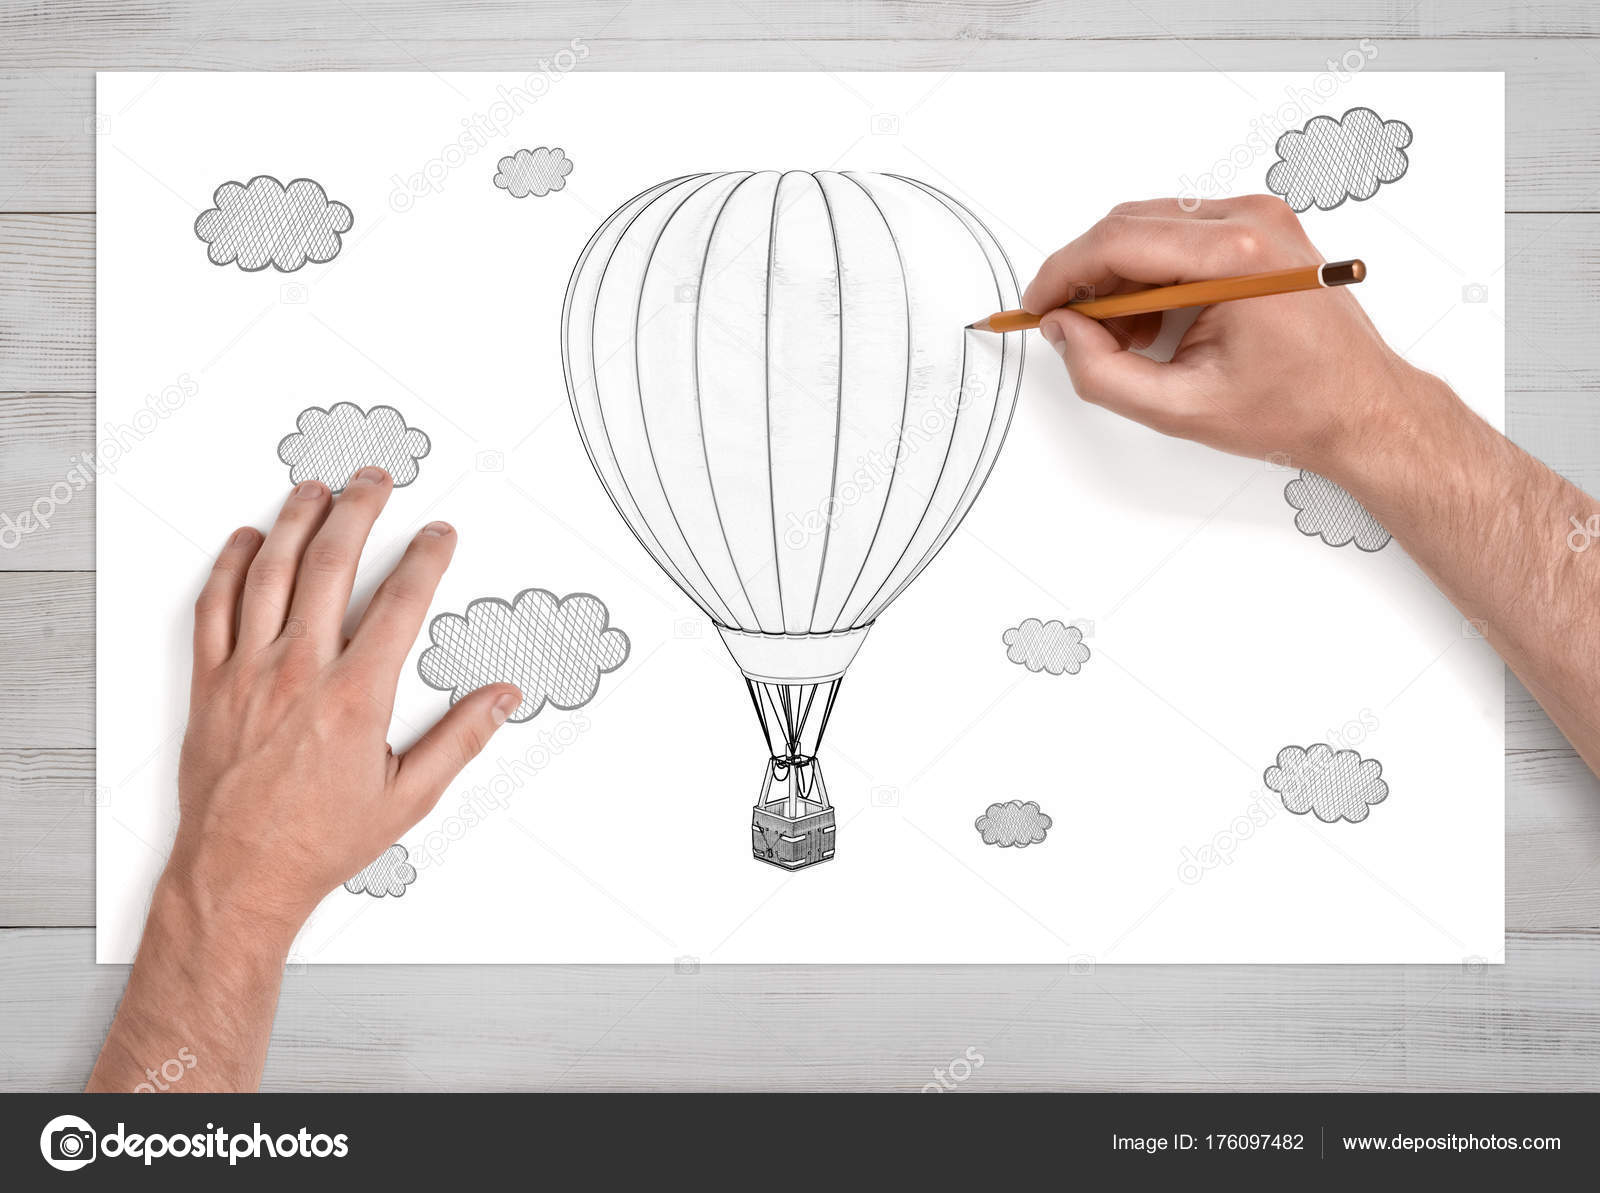 Male hands drawing a hot air balloon among the clouds with a pencil on a white